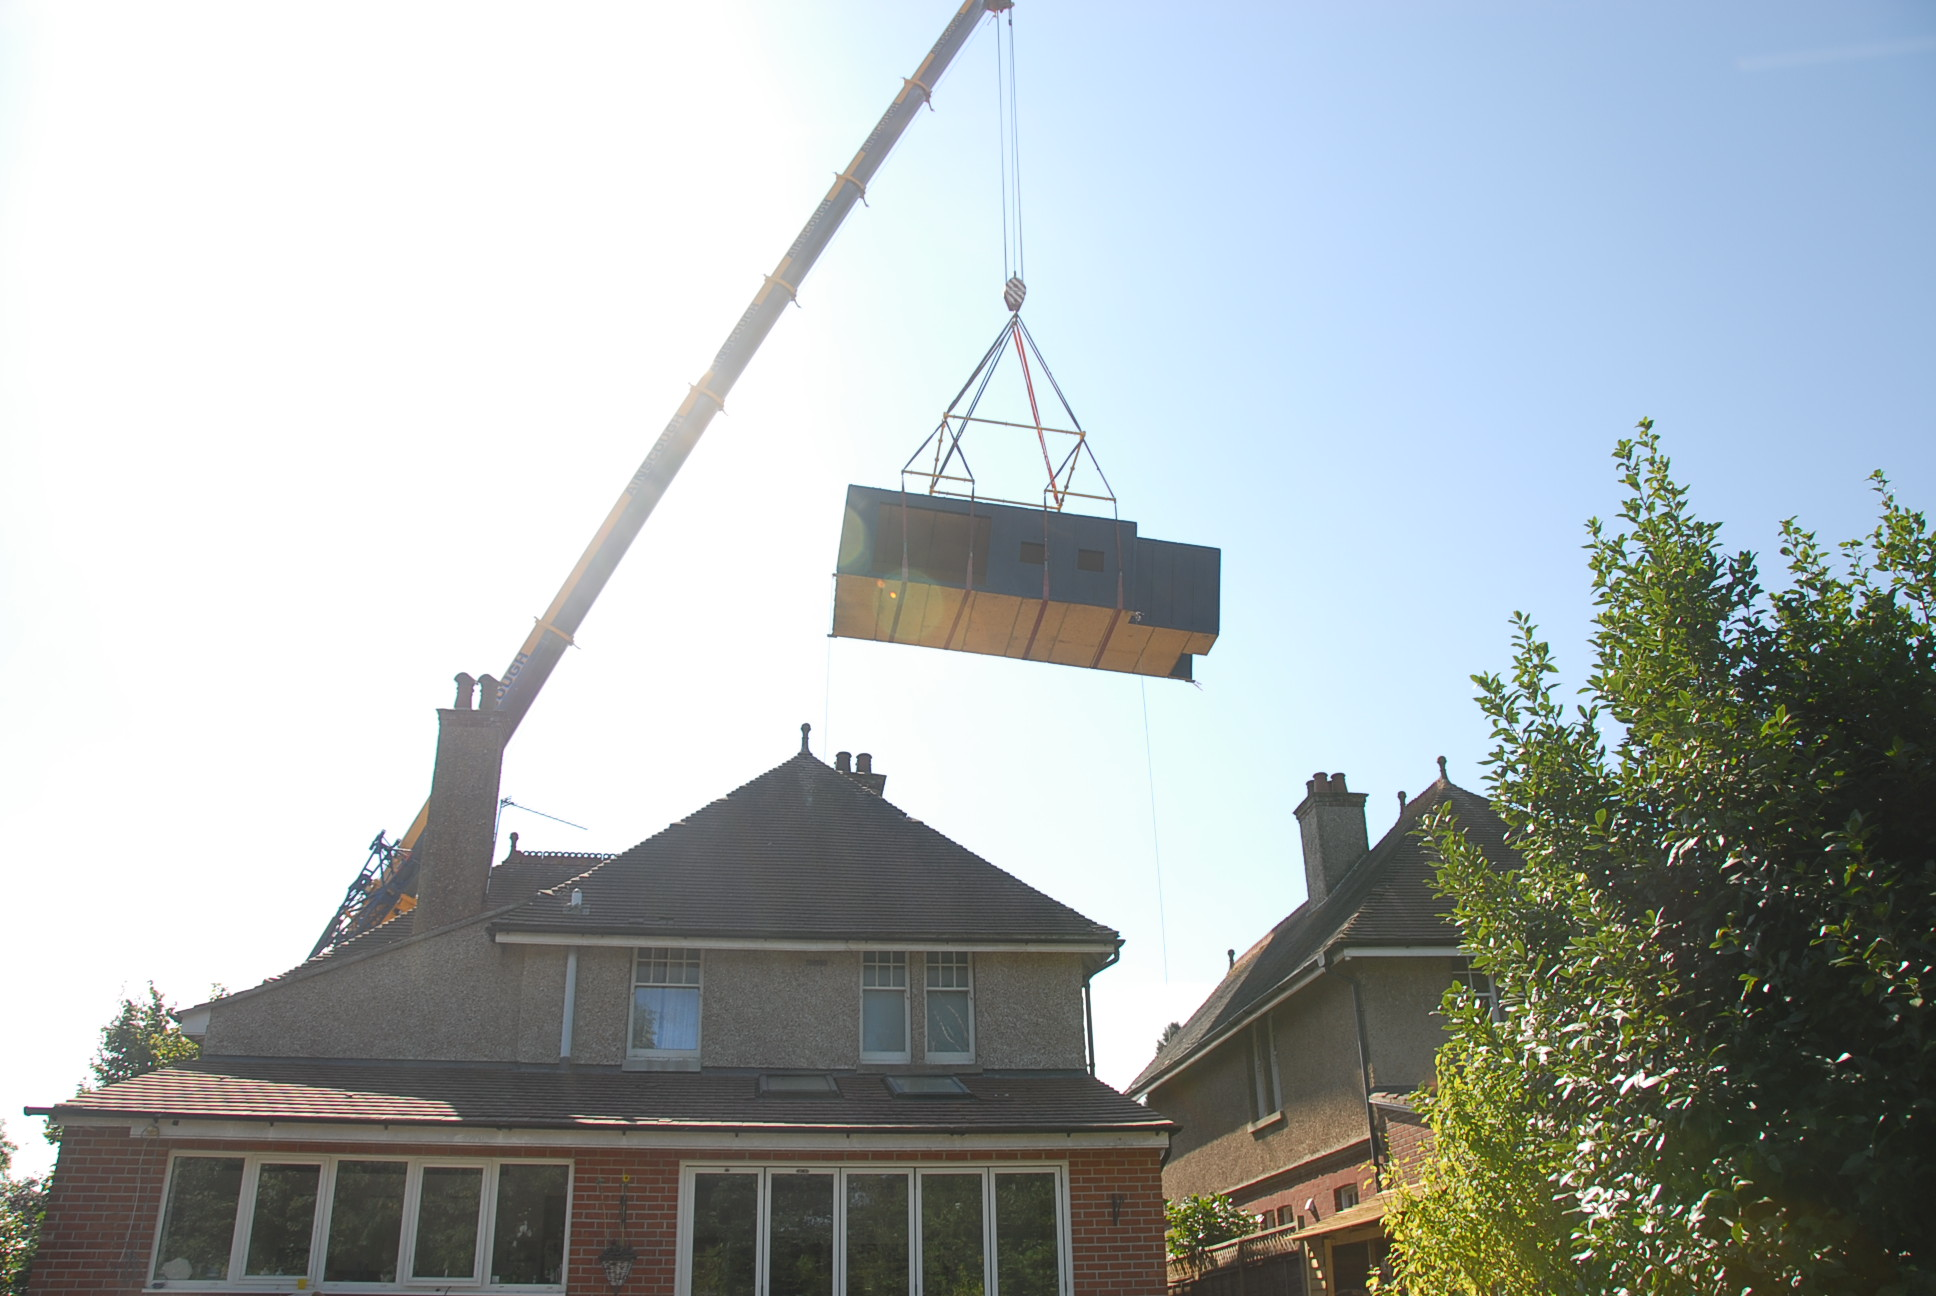 Modulift one-over-two-over-four spreader beam configuration lifting a modular building over a house